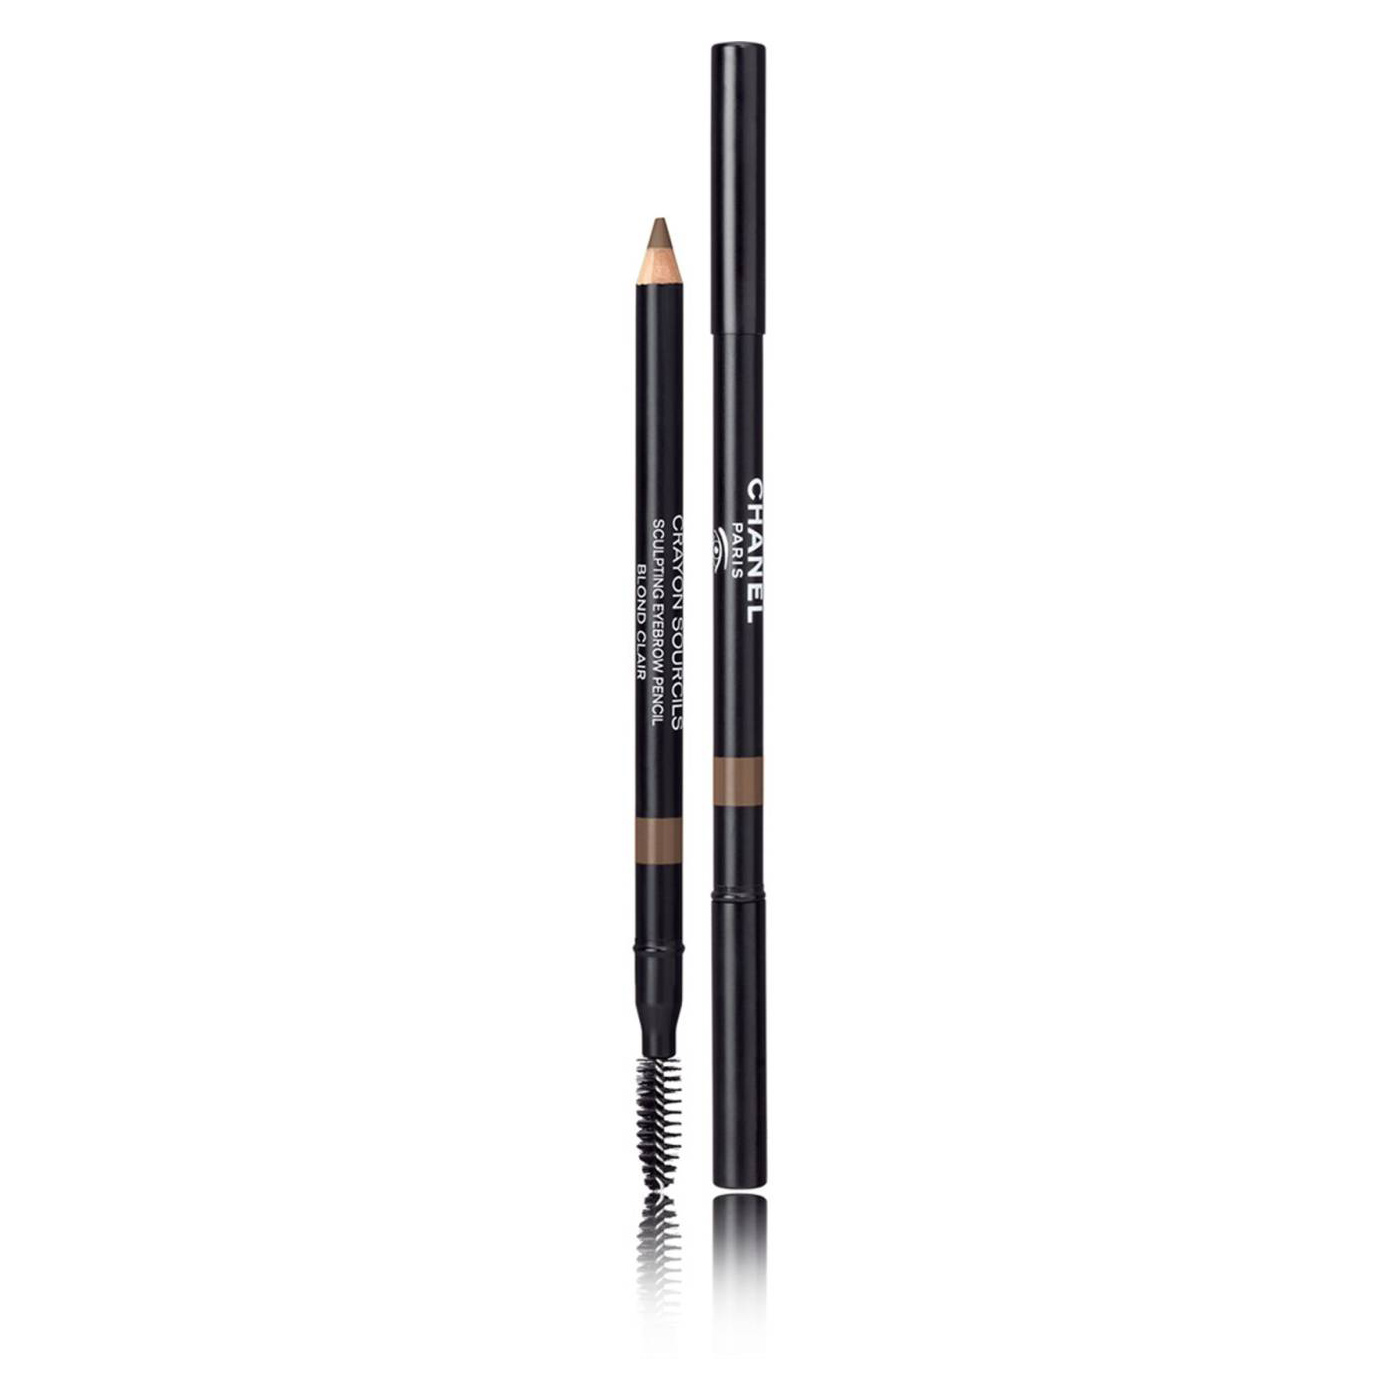 Chanel Crayon Sourcils Brow Pencil